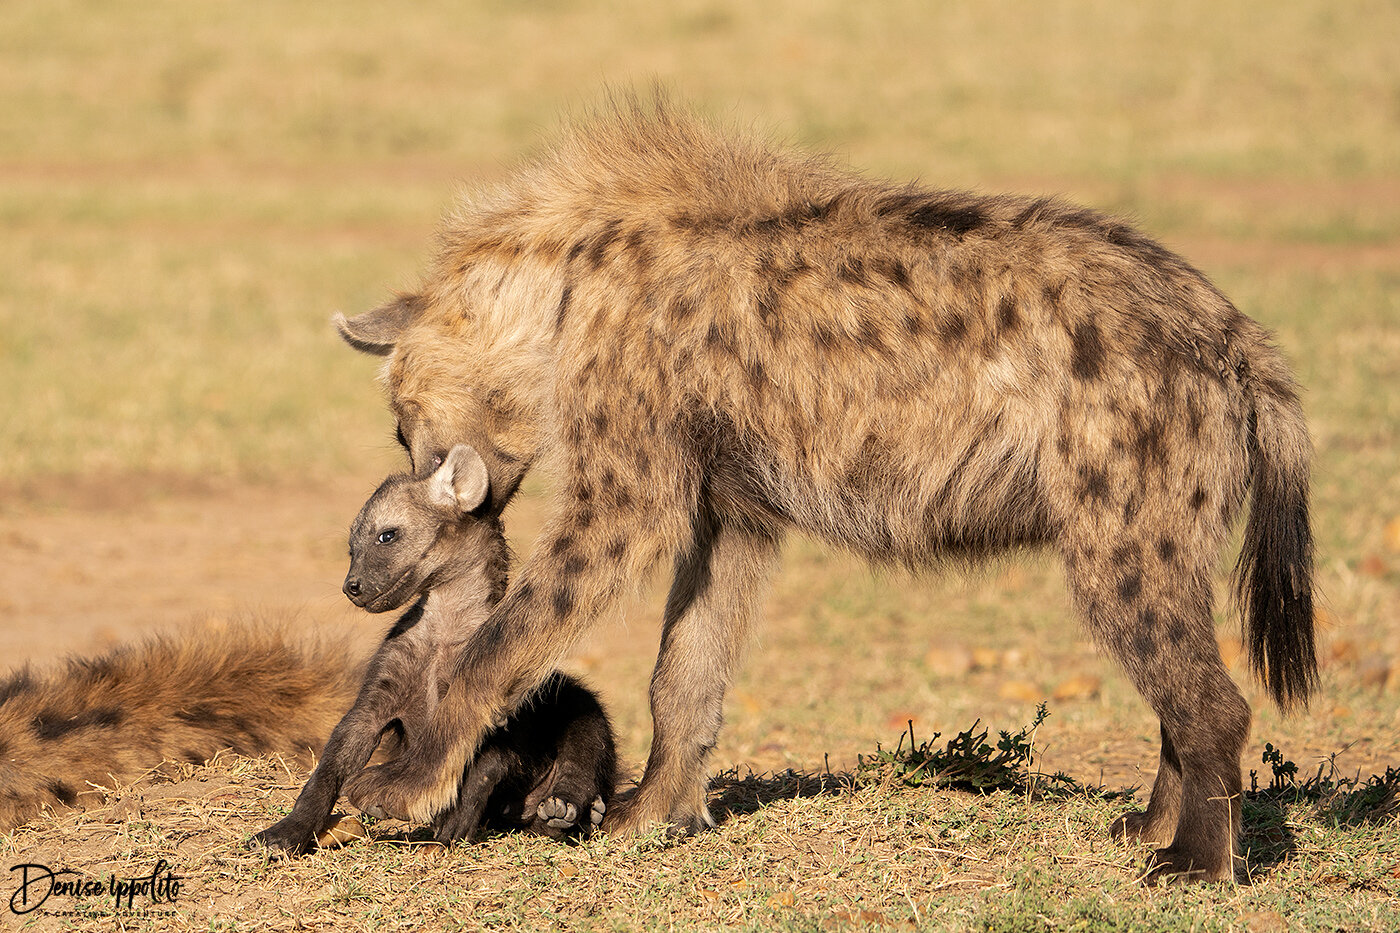 Hyena picking up its very young son.